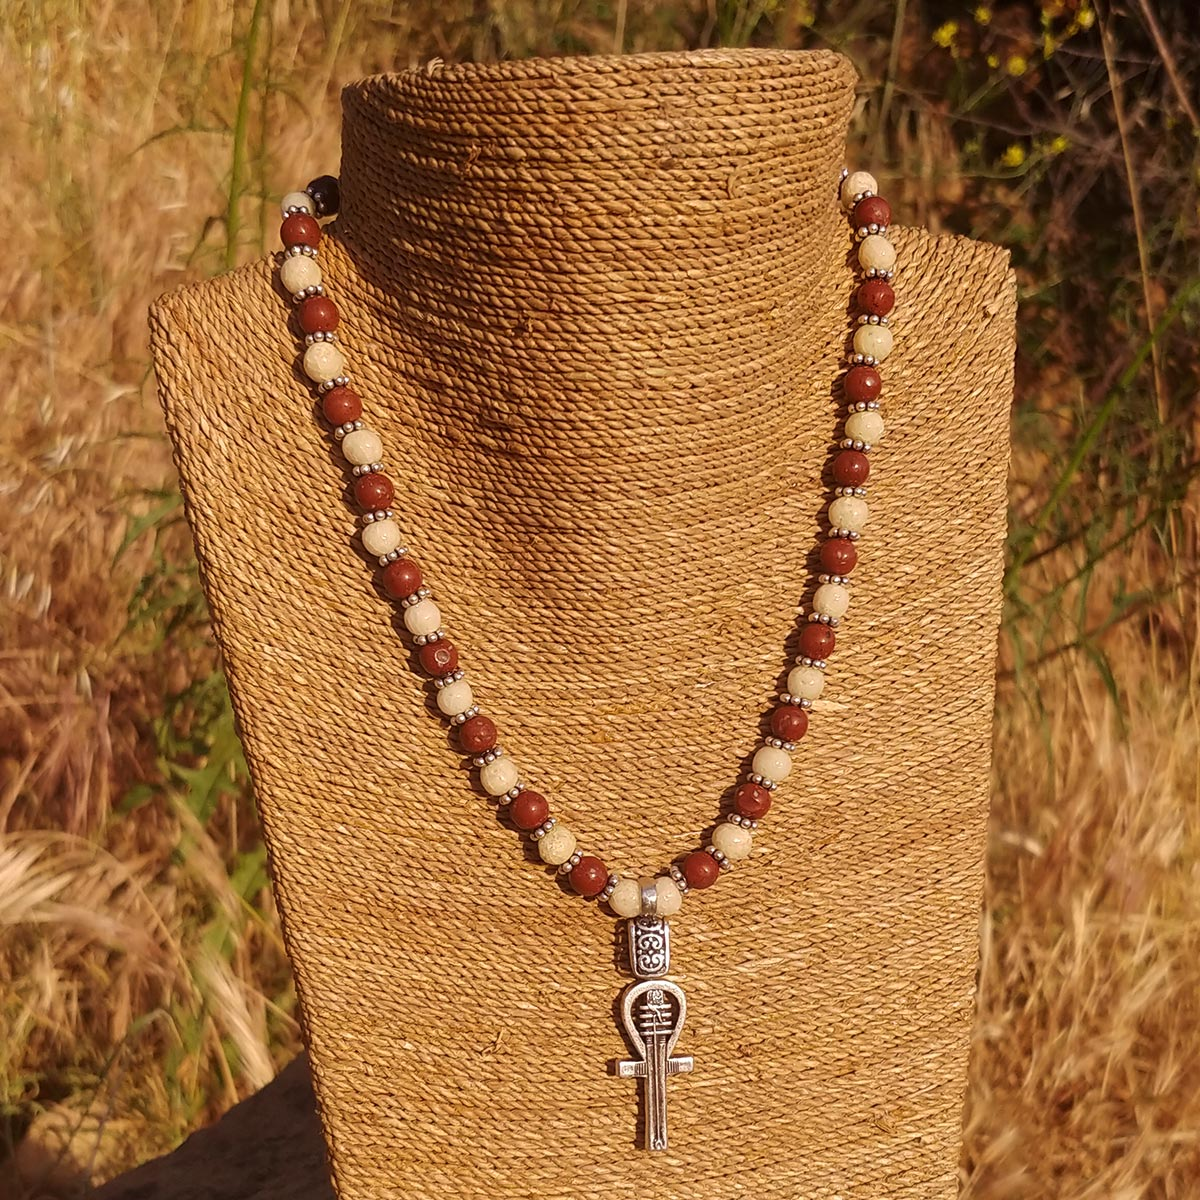 Women's Necklace in Sand Tone Faience with Hand-Hewn Matte Red Jasper - Em Hotep Collection